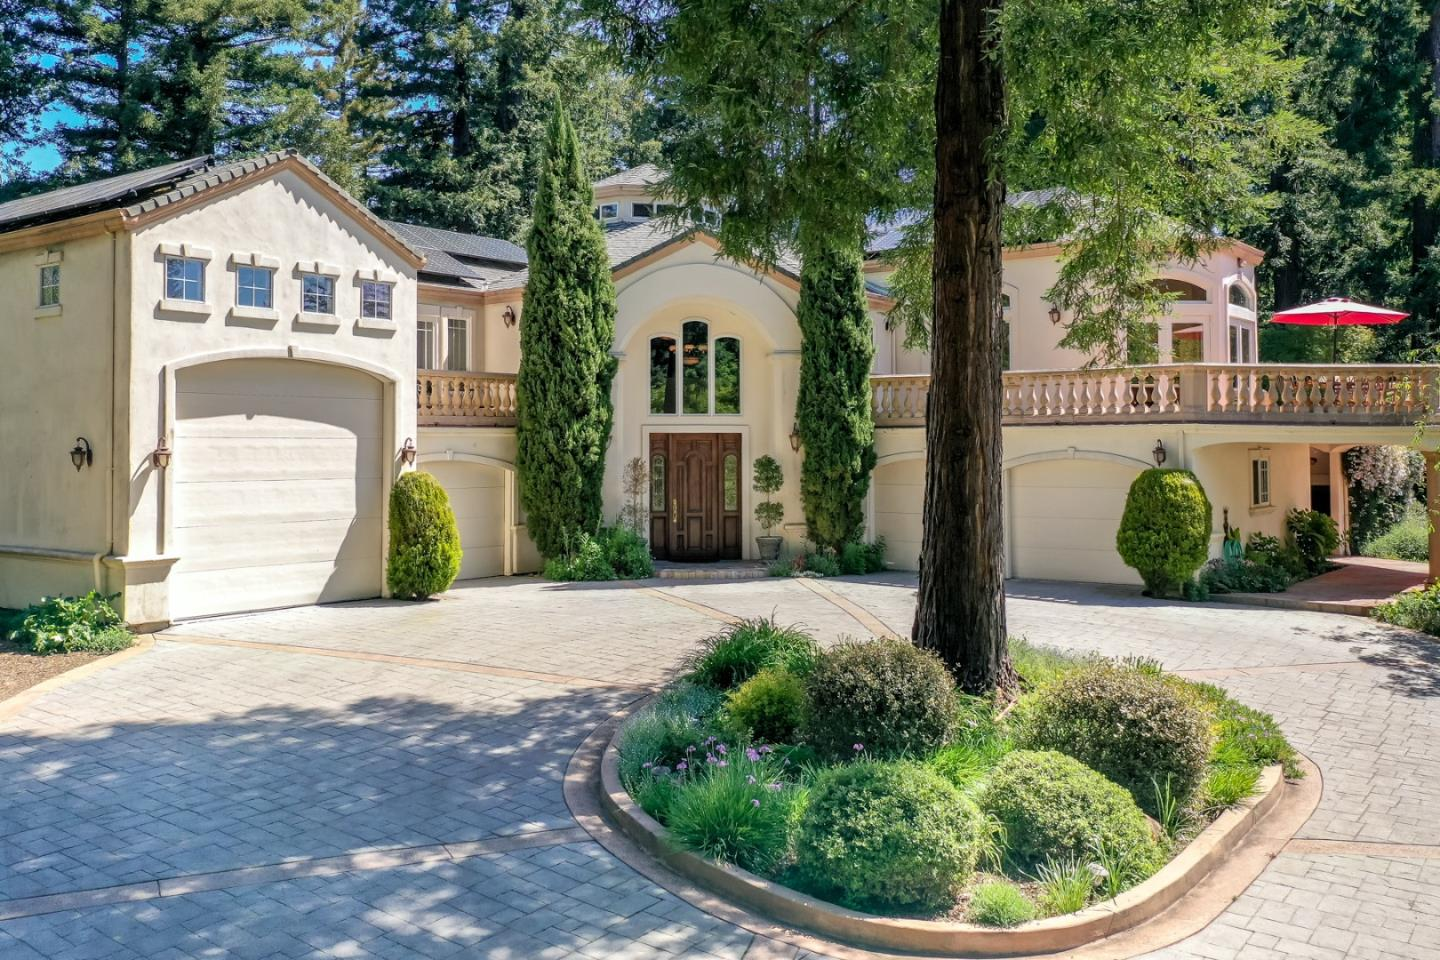 "This gated Country estate 14 miles above Silicon Valley, via Highway 9, provides a front row seat to mother nature with sweeping ocean & forest views, resort like living, fresh mountain air and complete privacy.  Offering direct access to ""Skyline to Sea Trail"" & 30K acres of state parks, the property also boasts stands of cathedral redwoods surrounding a 5 bd/3.5 bath main residence, a 632-sf Guest House, 664-sf gym, saltwater pool, spa, 1/1 sunlit cottage, 5-stall barn with outdoor arena and miles of riding trails perfect for any outdoor enthusiast.  The Great Room showcases vaulted ceilings surrounded by french doors to a veranda with views of Monterey Bay adjacent to the chef's kitchen, large dining area, & luxe master suite with spa-like bath, fireplace, & private deck. The home features a large office to work from home, plus a media room, billiards & library to provide entertainment. The property generously hosts everything from family BBQs to large-scale galas."